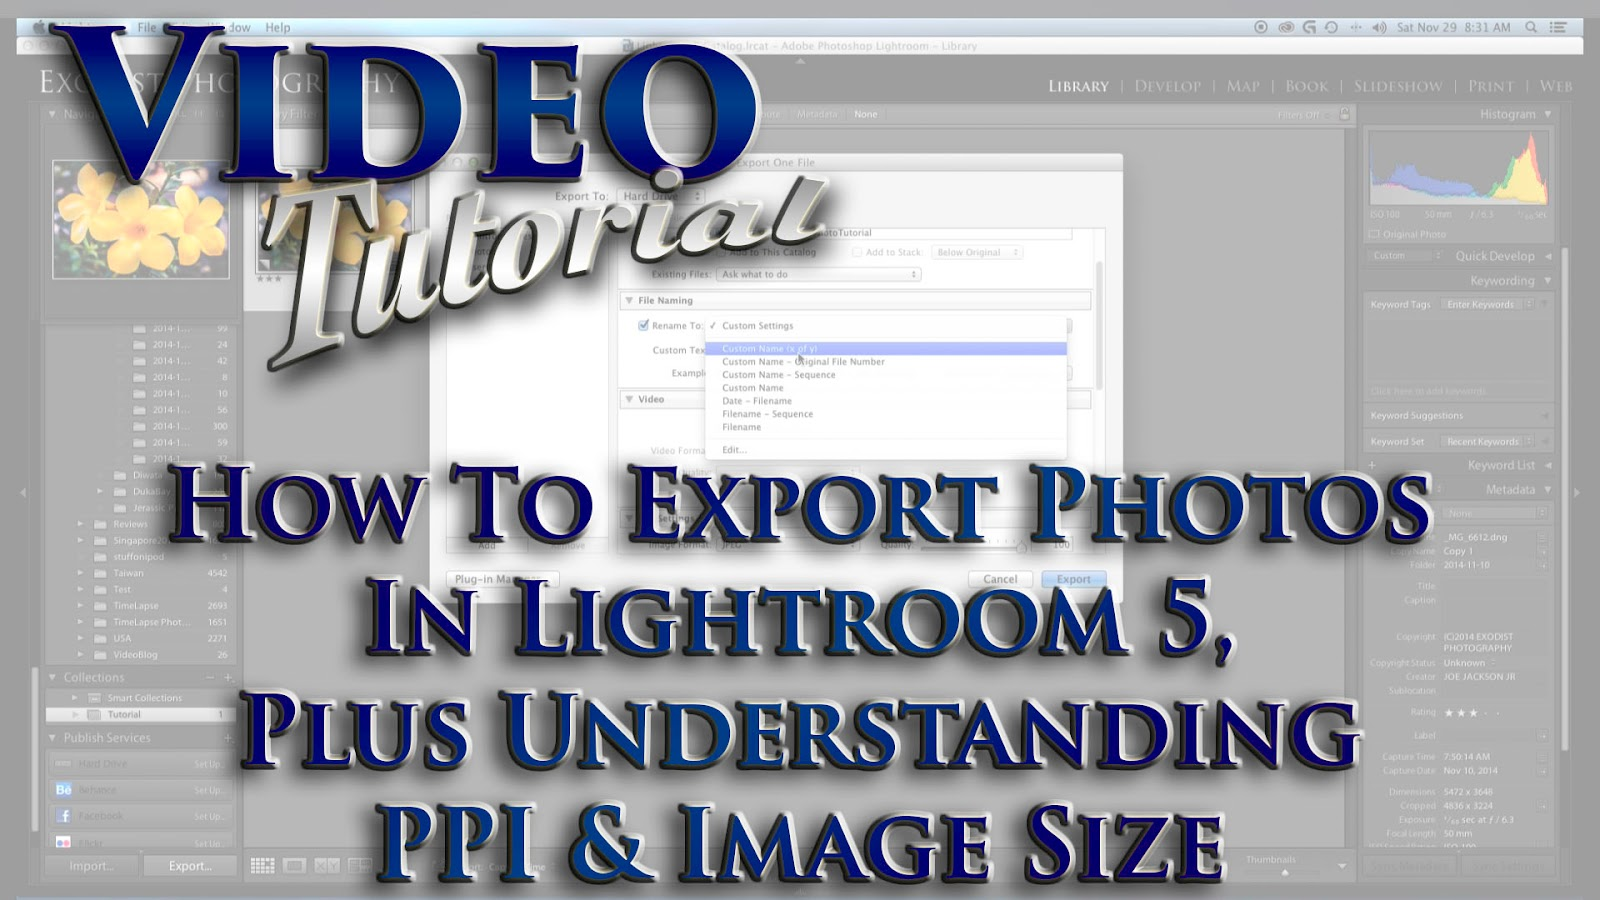 Learn How To Export Photos In Lightroom 5, Plus Understanding PPI & Image Size